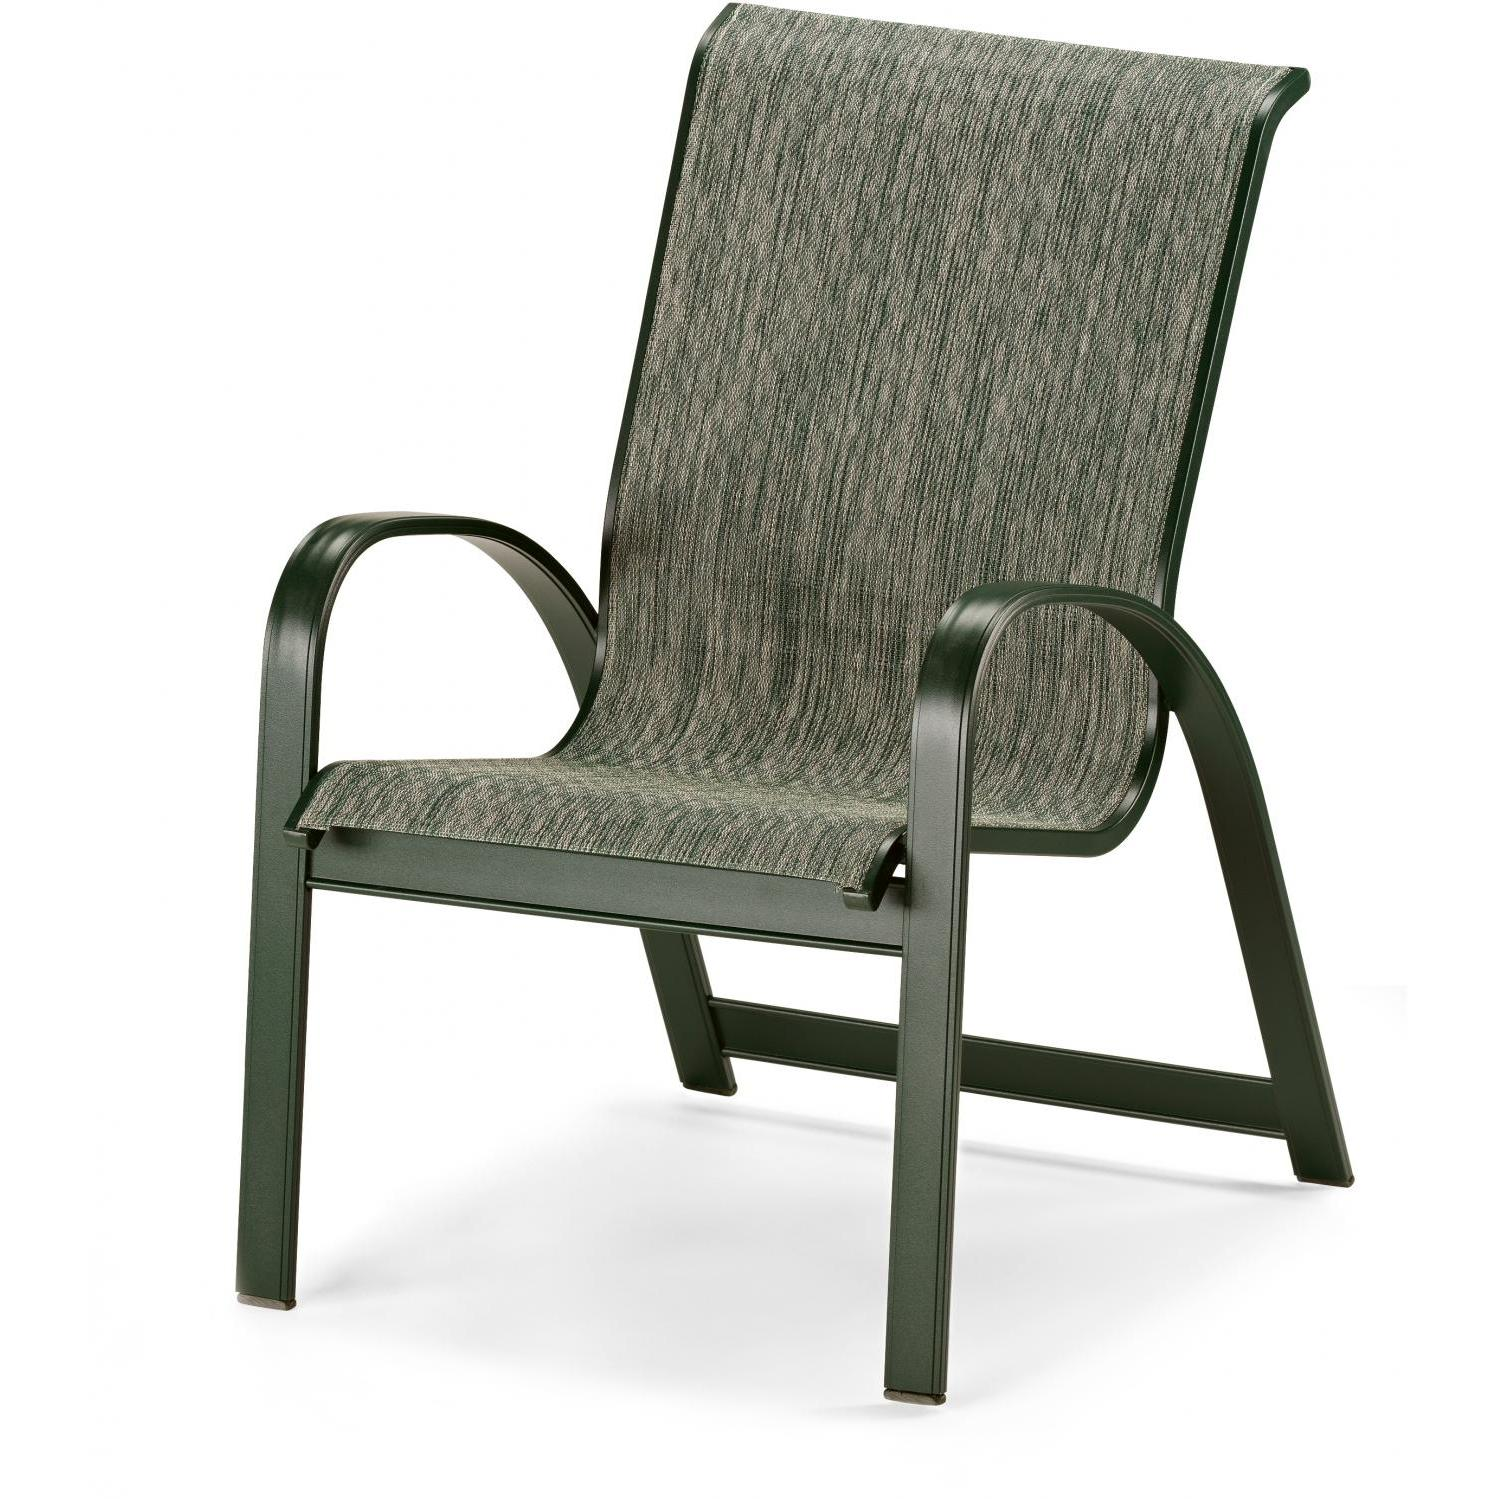 Image of: Patio Sling Chairs Style